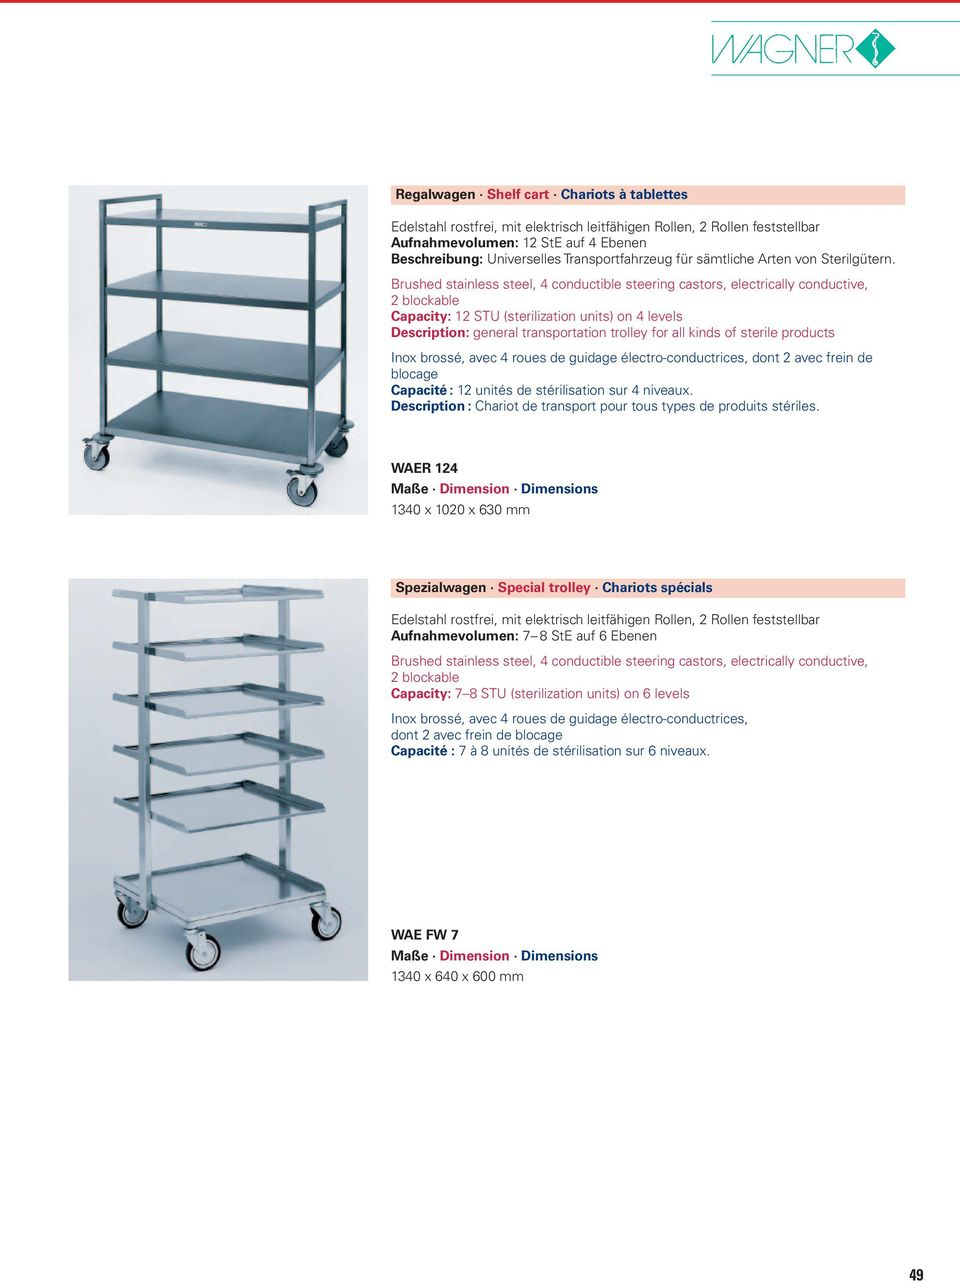 Brushed stainless steel, 4 conductible steering castors, electrically conductive, 2 blockable Capacity: 12 STU (sterilization units) on 4 levels Description: general transportation trolley for all